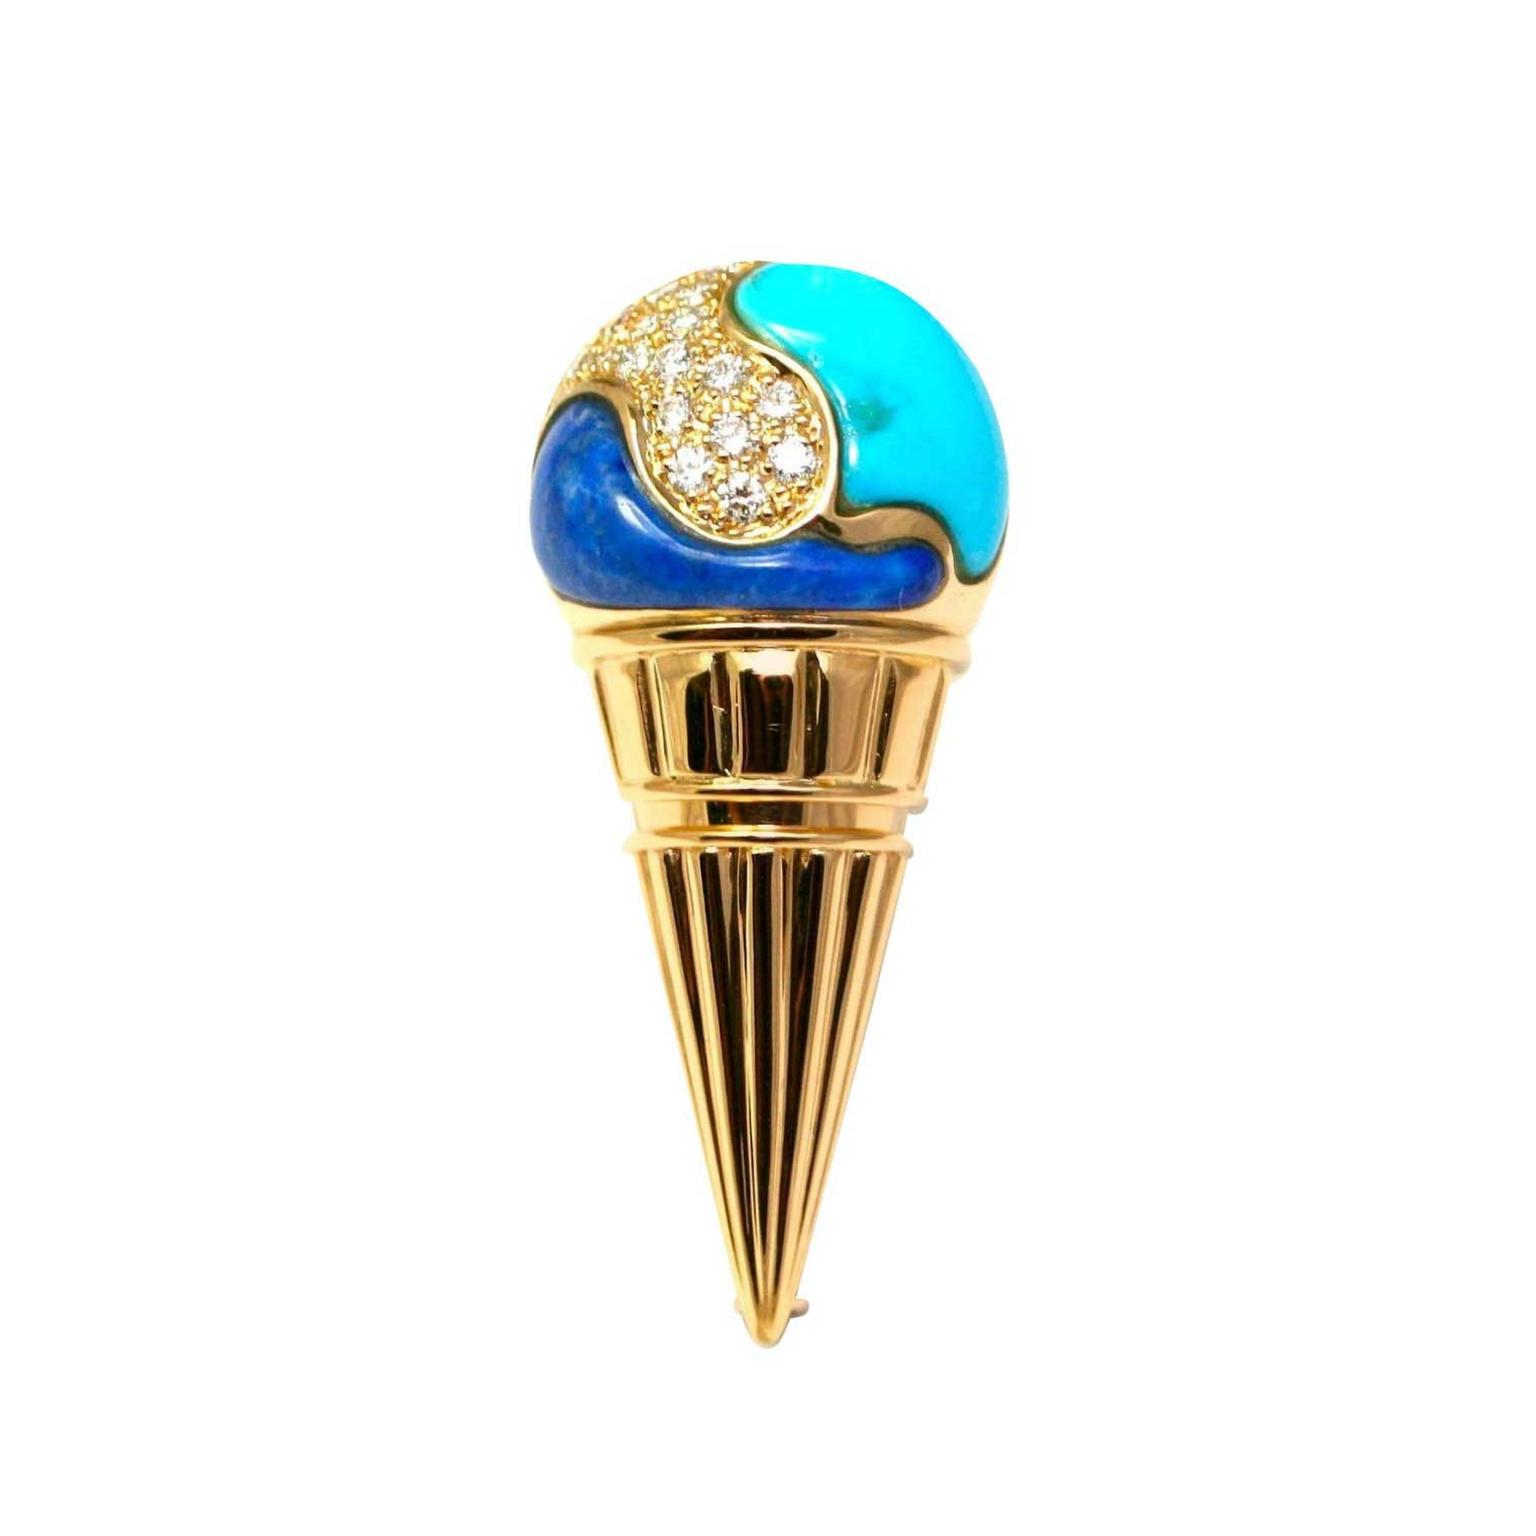 Vintage 1980s Bulgari ice cream brooch